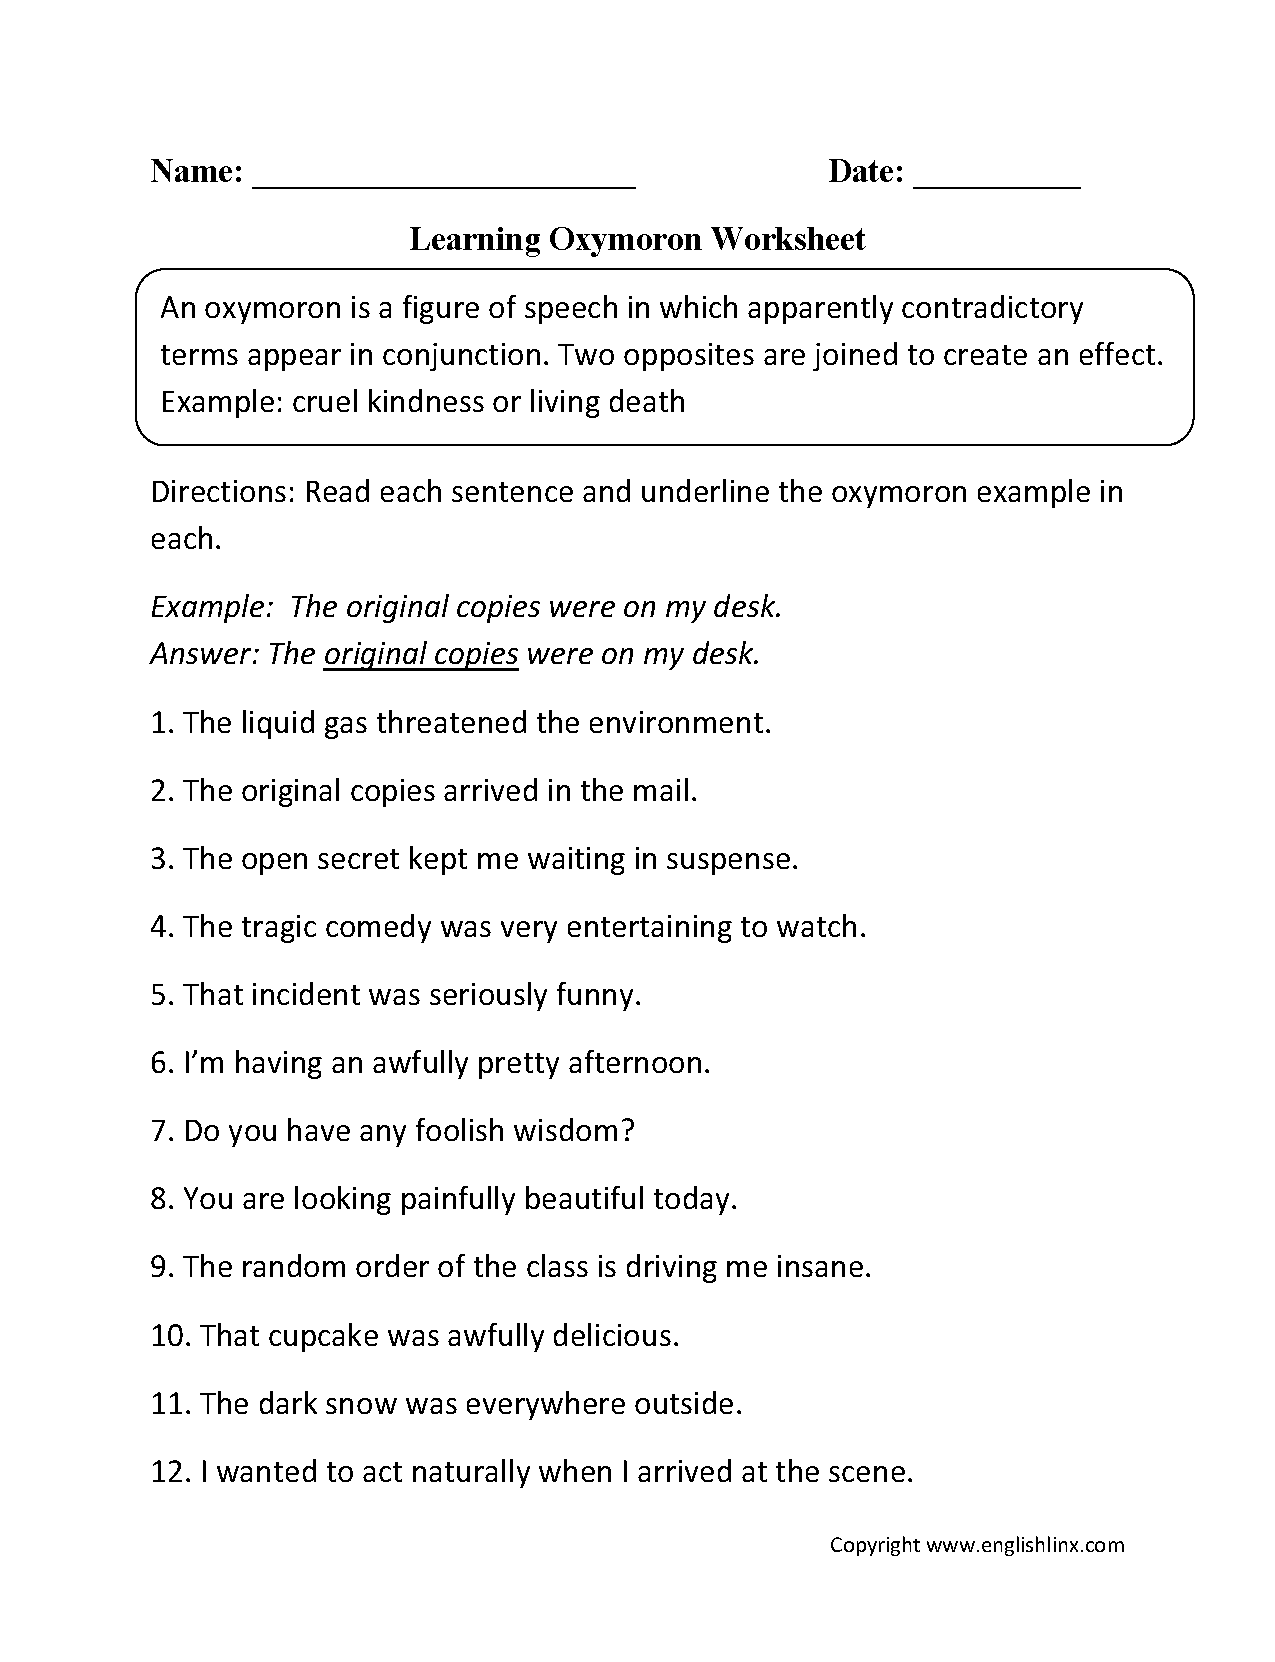 Worksheets Figurative Language Review Worksheet oxymoron figurative language worksheets englishlinx com board worksheets